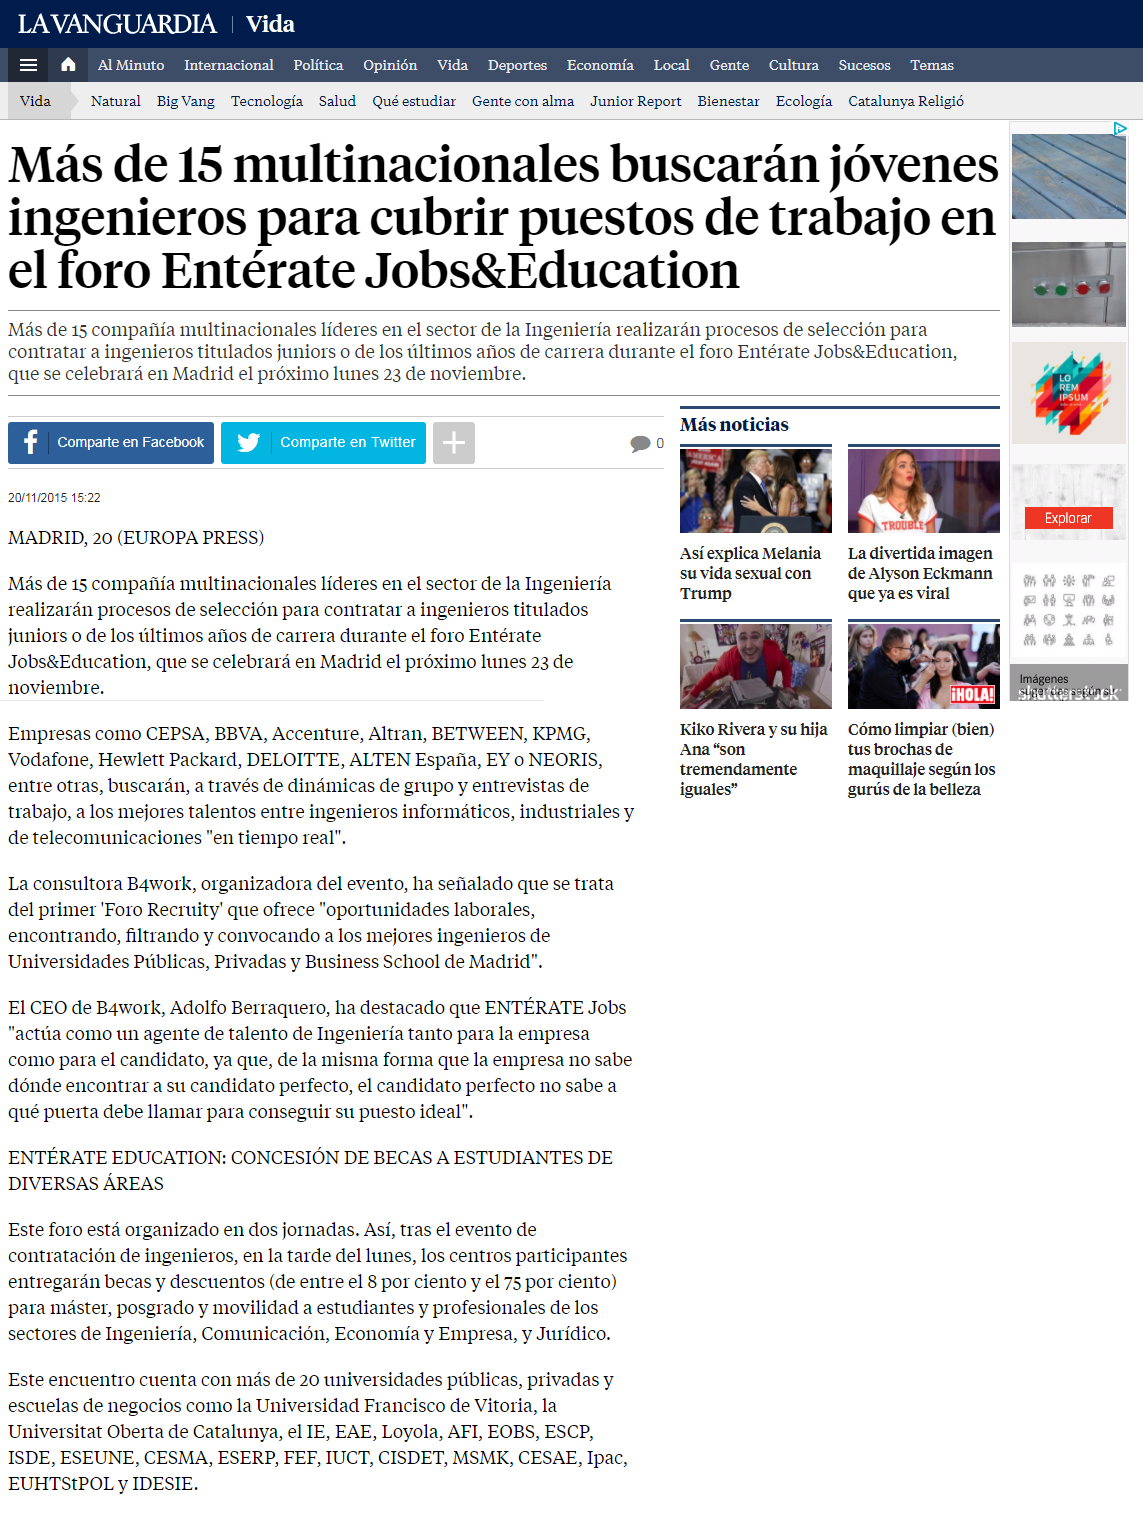 La Vanguardia article on BETWEEN Technology talent events